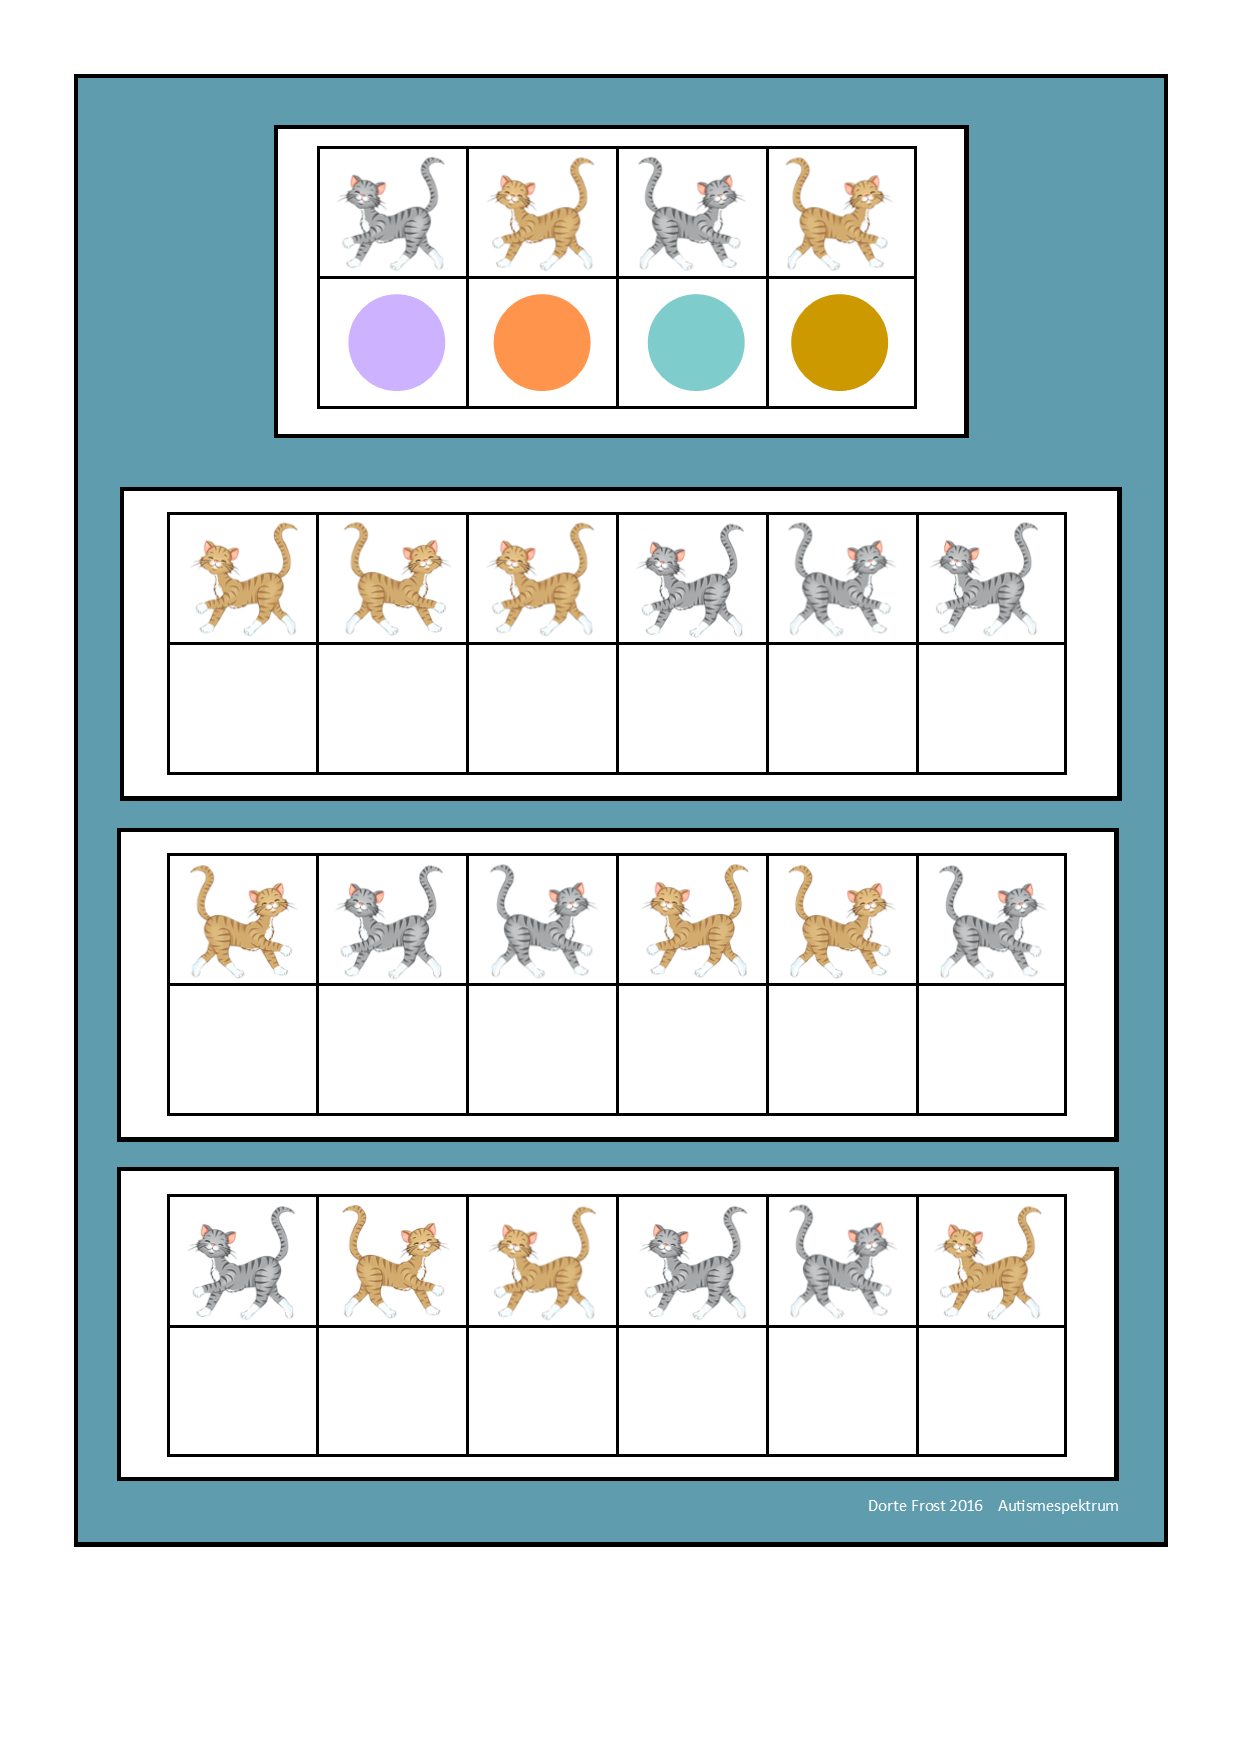 Board For The Cat Visual Perception Game Find The Belonging Tiles On Autismespektrum On